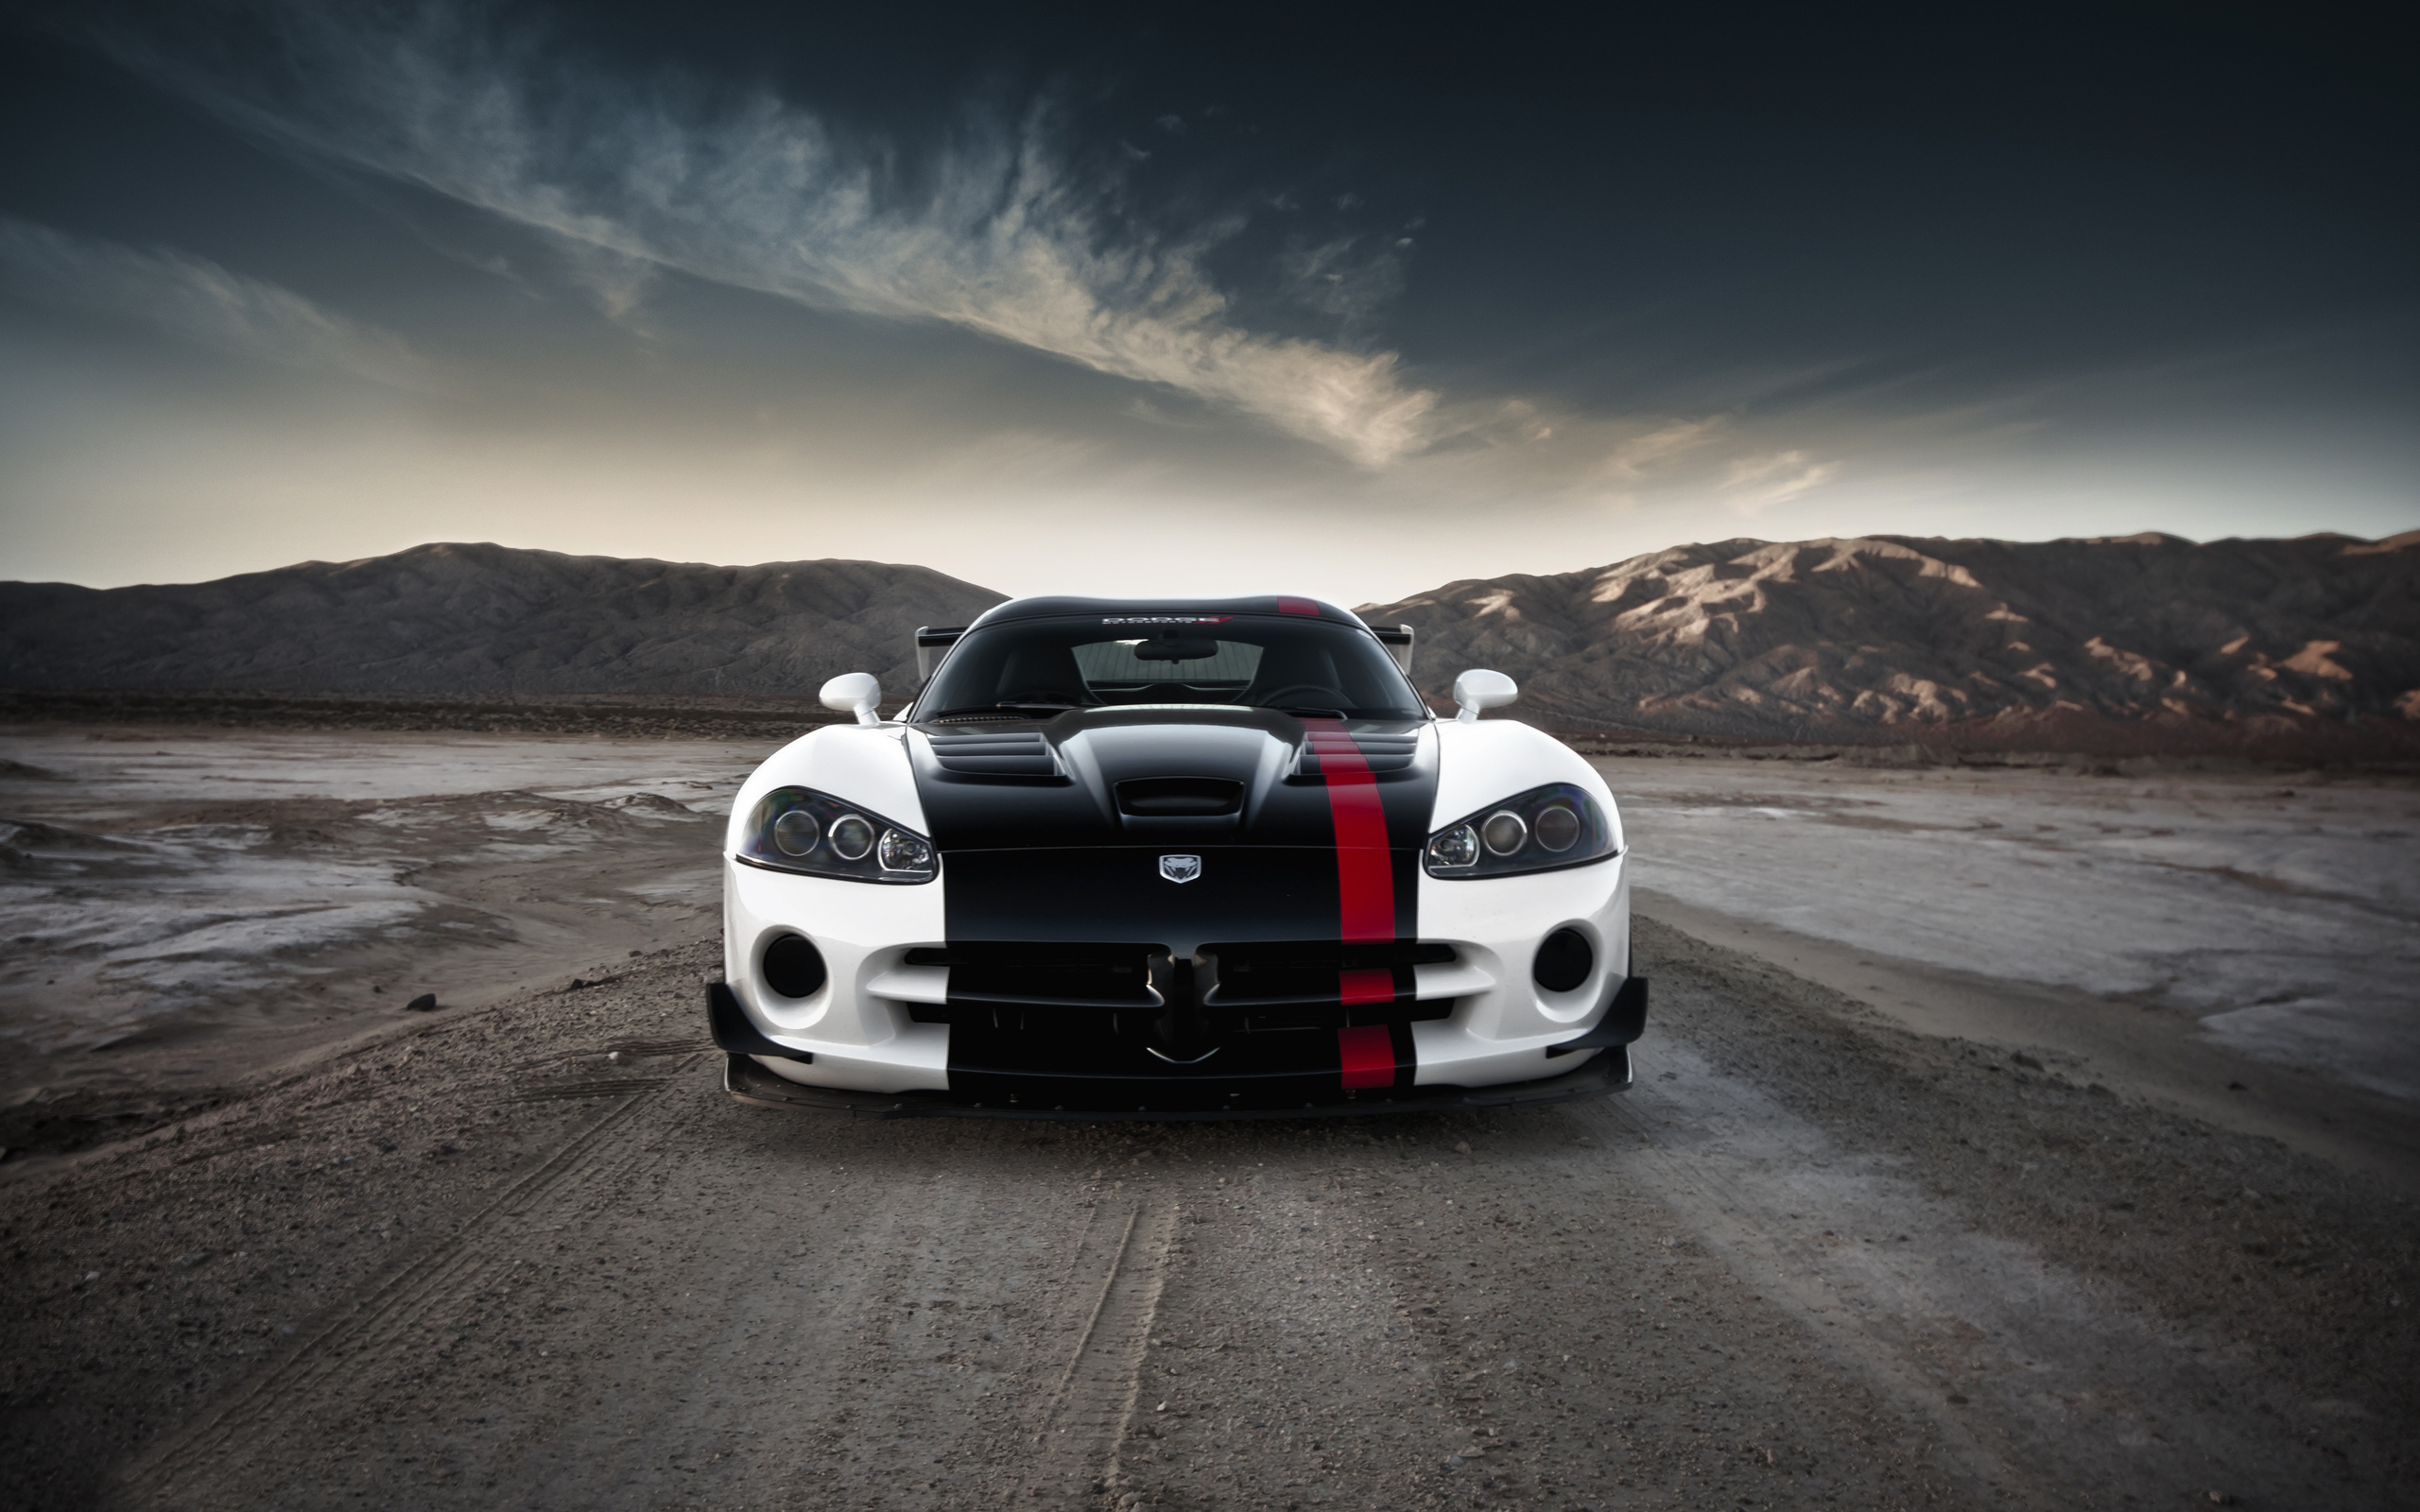 7 Dodge Viper ACR HD Wallpapers | Background Images - Wallpaper Abyss